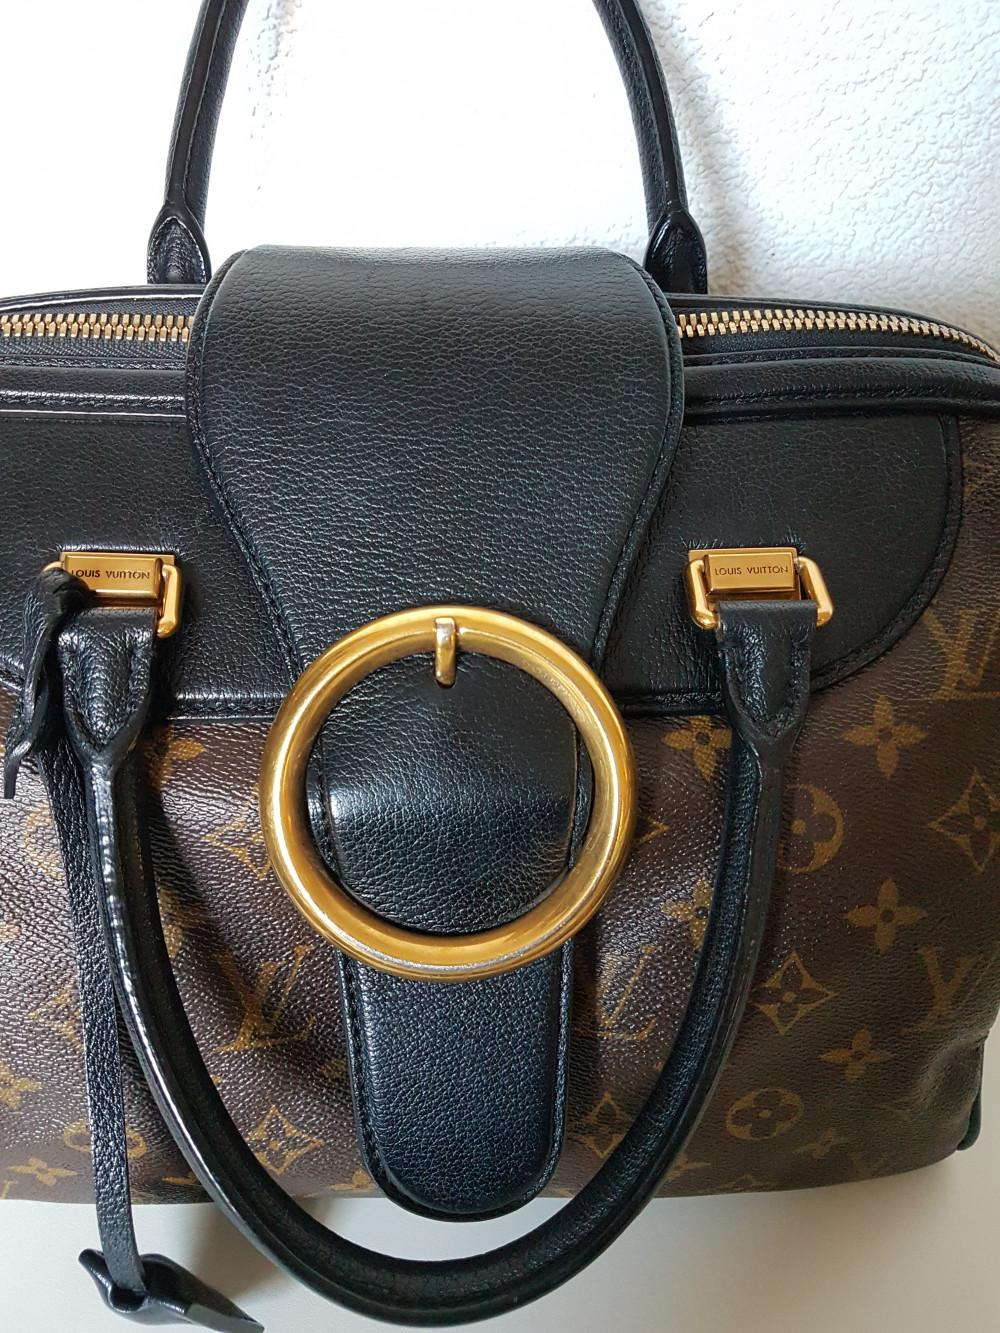 louis-vuitton-96161-1-352729